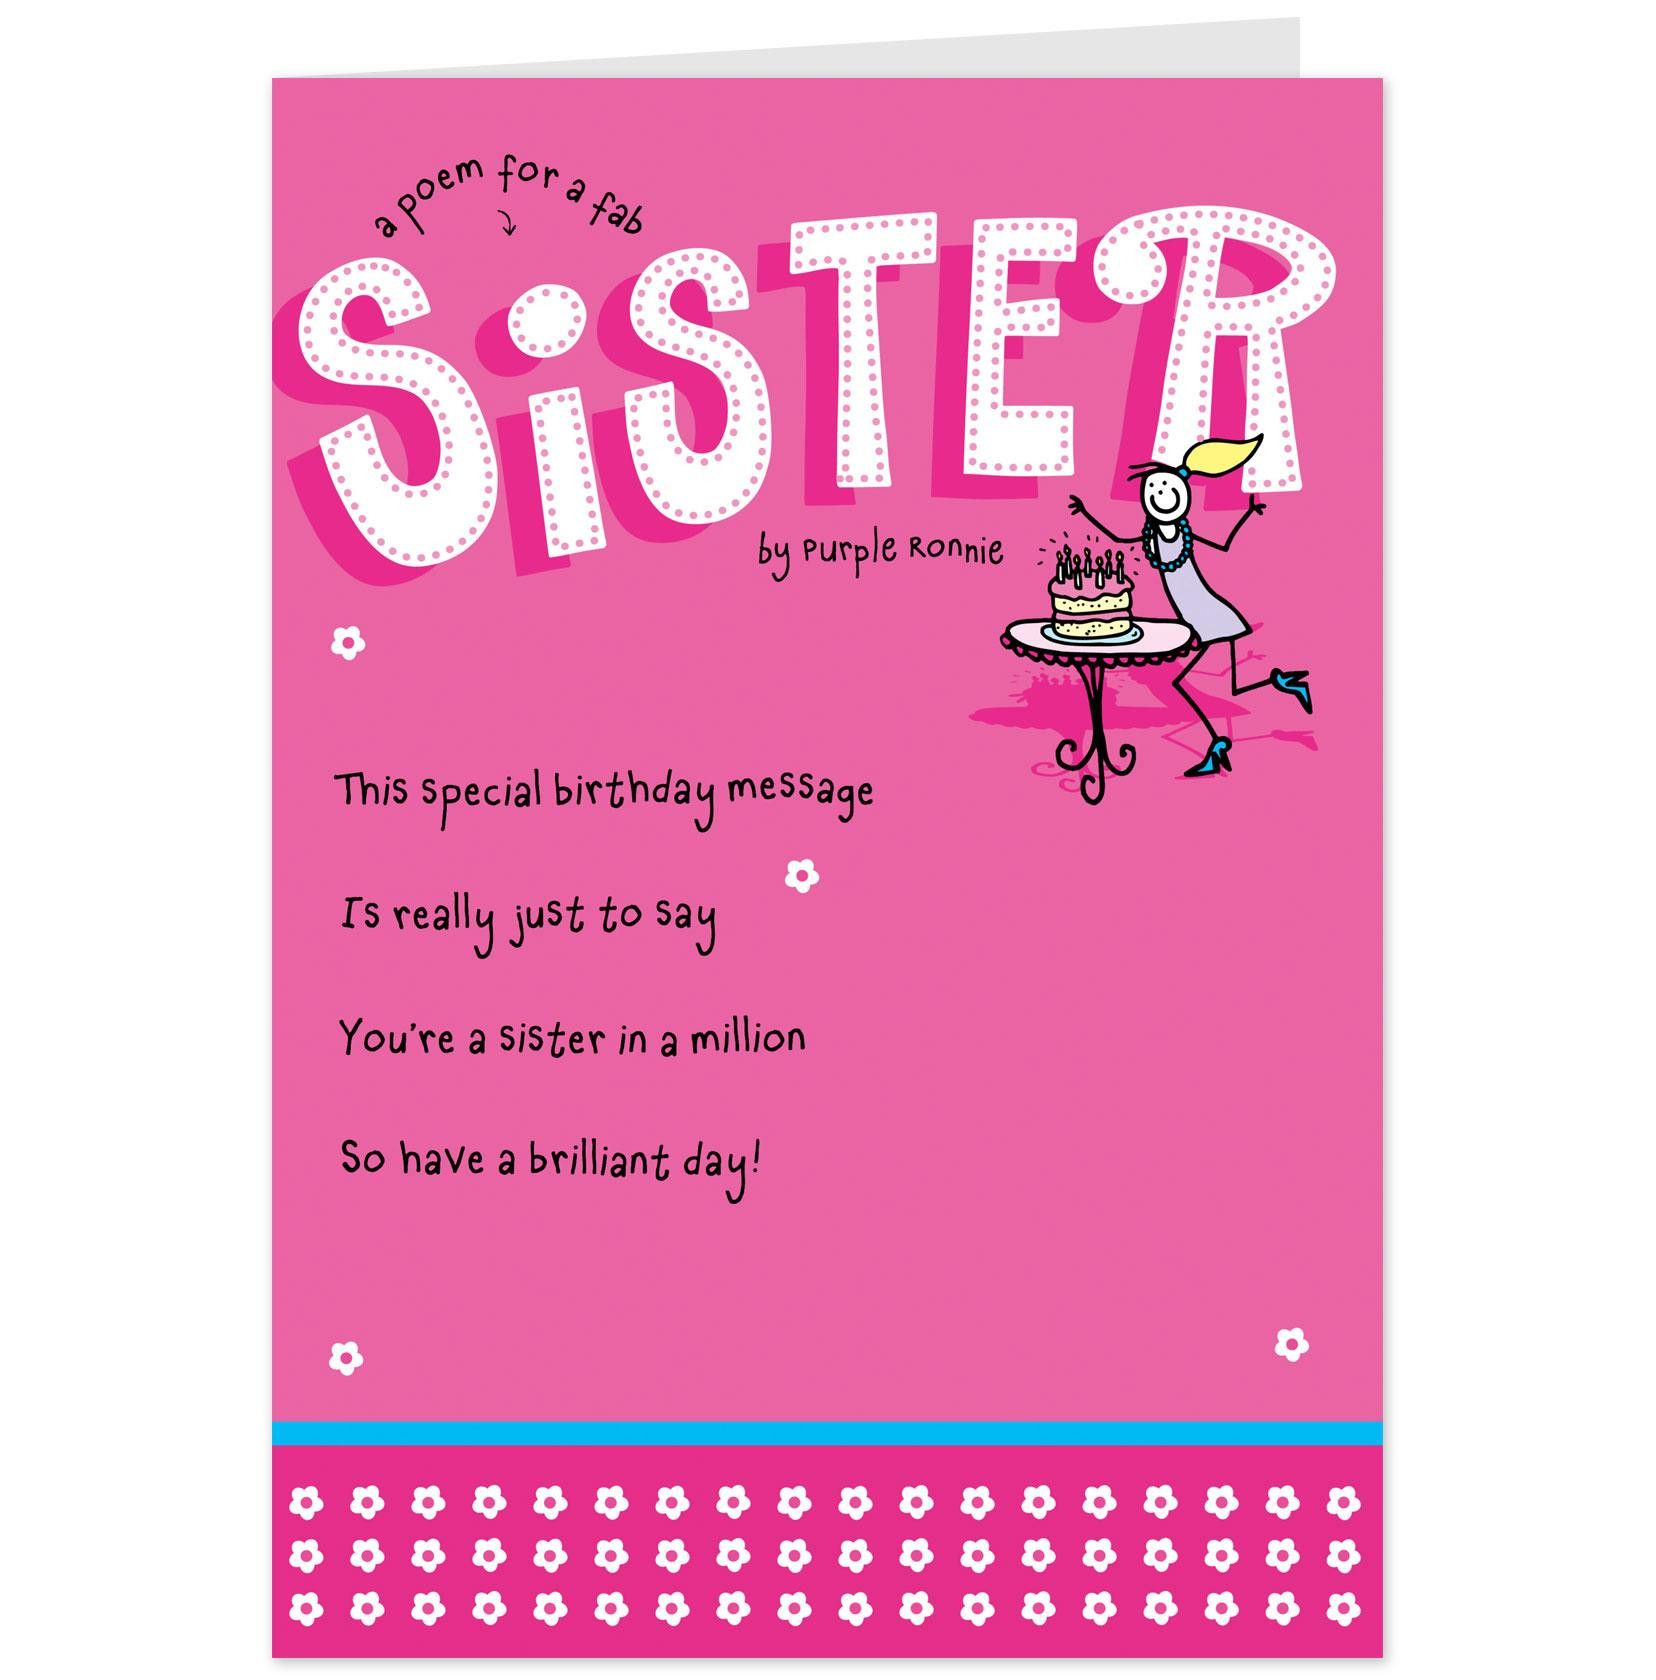 Funny Quotes About Sisters 20 Of The Best Ideas For Funny Birthday Quotes For Si Birthday Wishes For Sister Sister Birthday Quotes Happy Birthday Sister Quotes